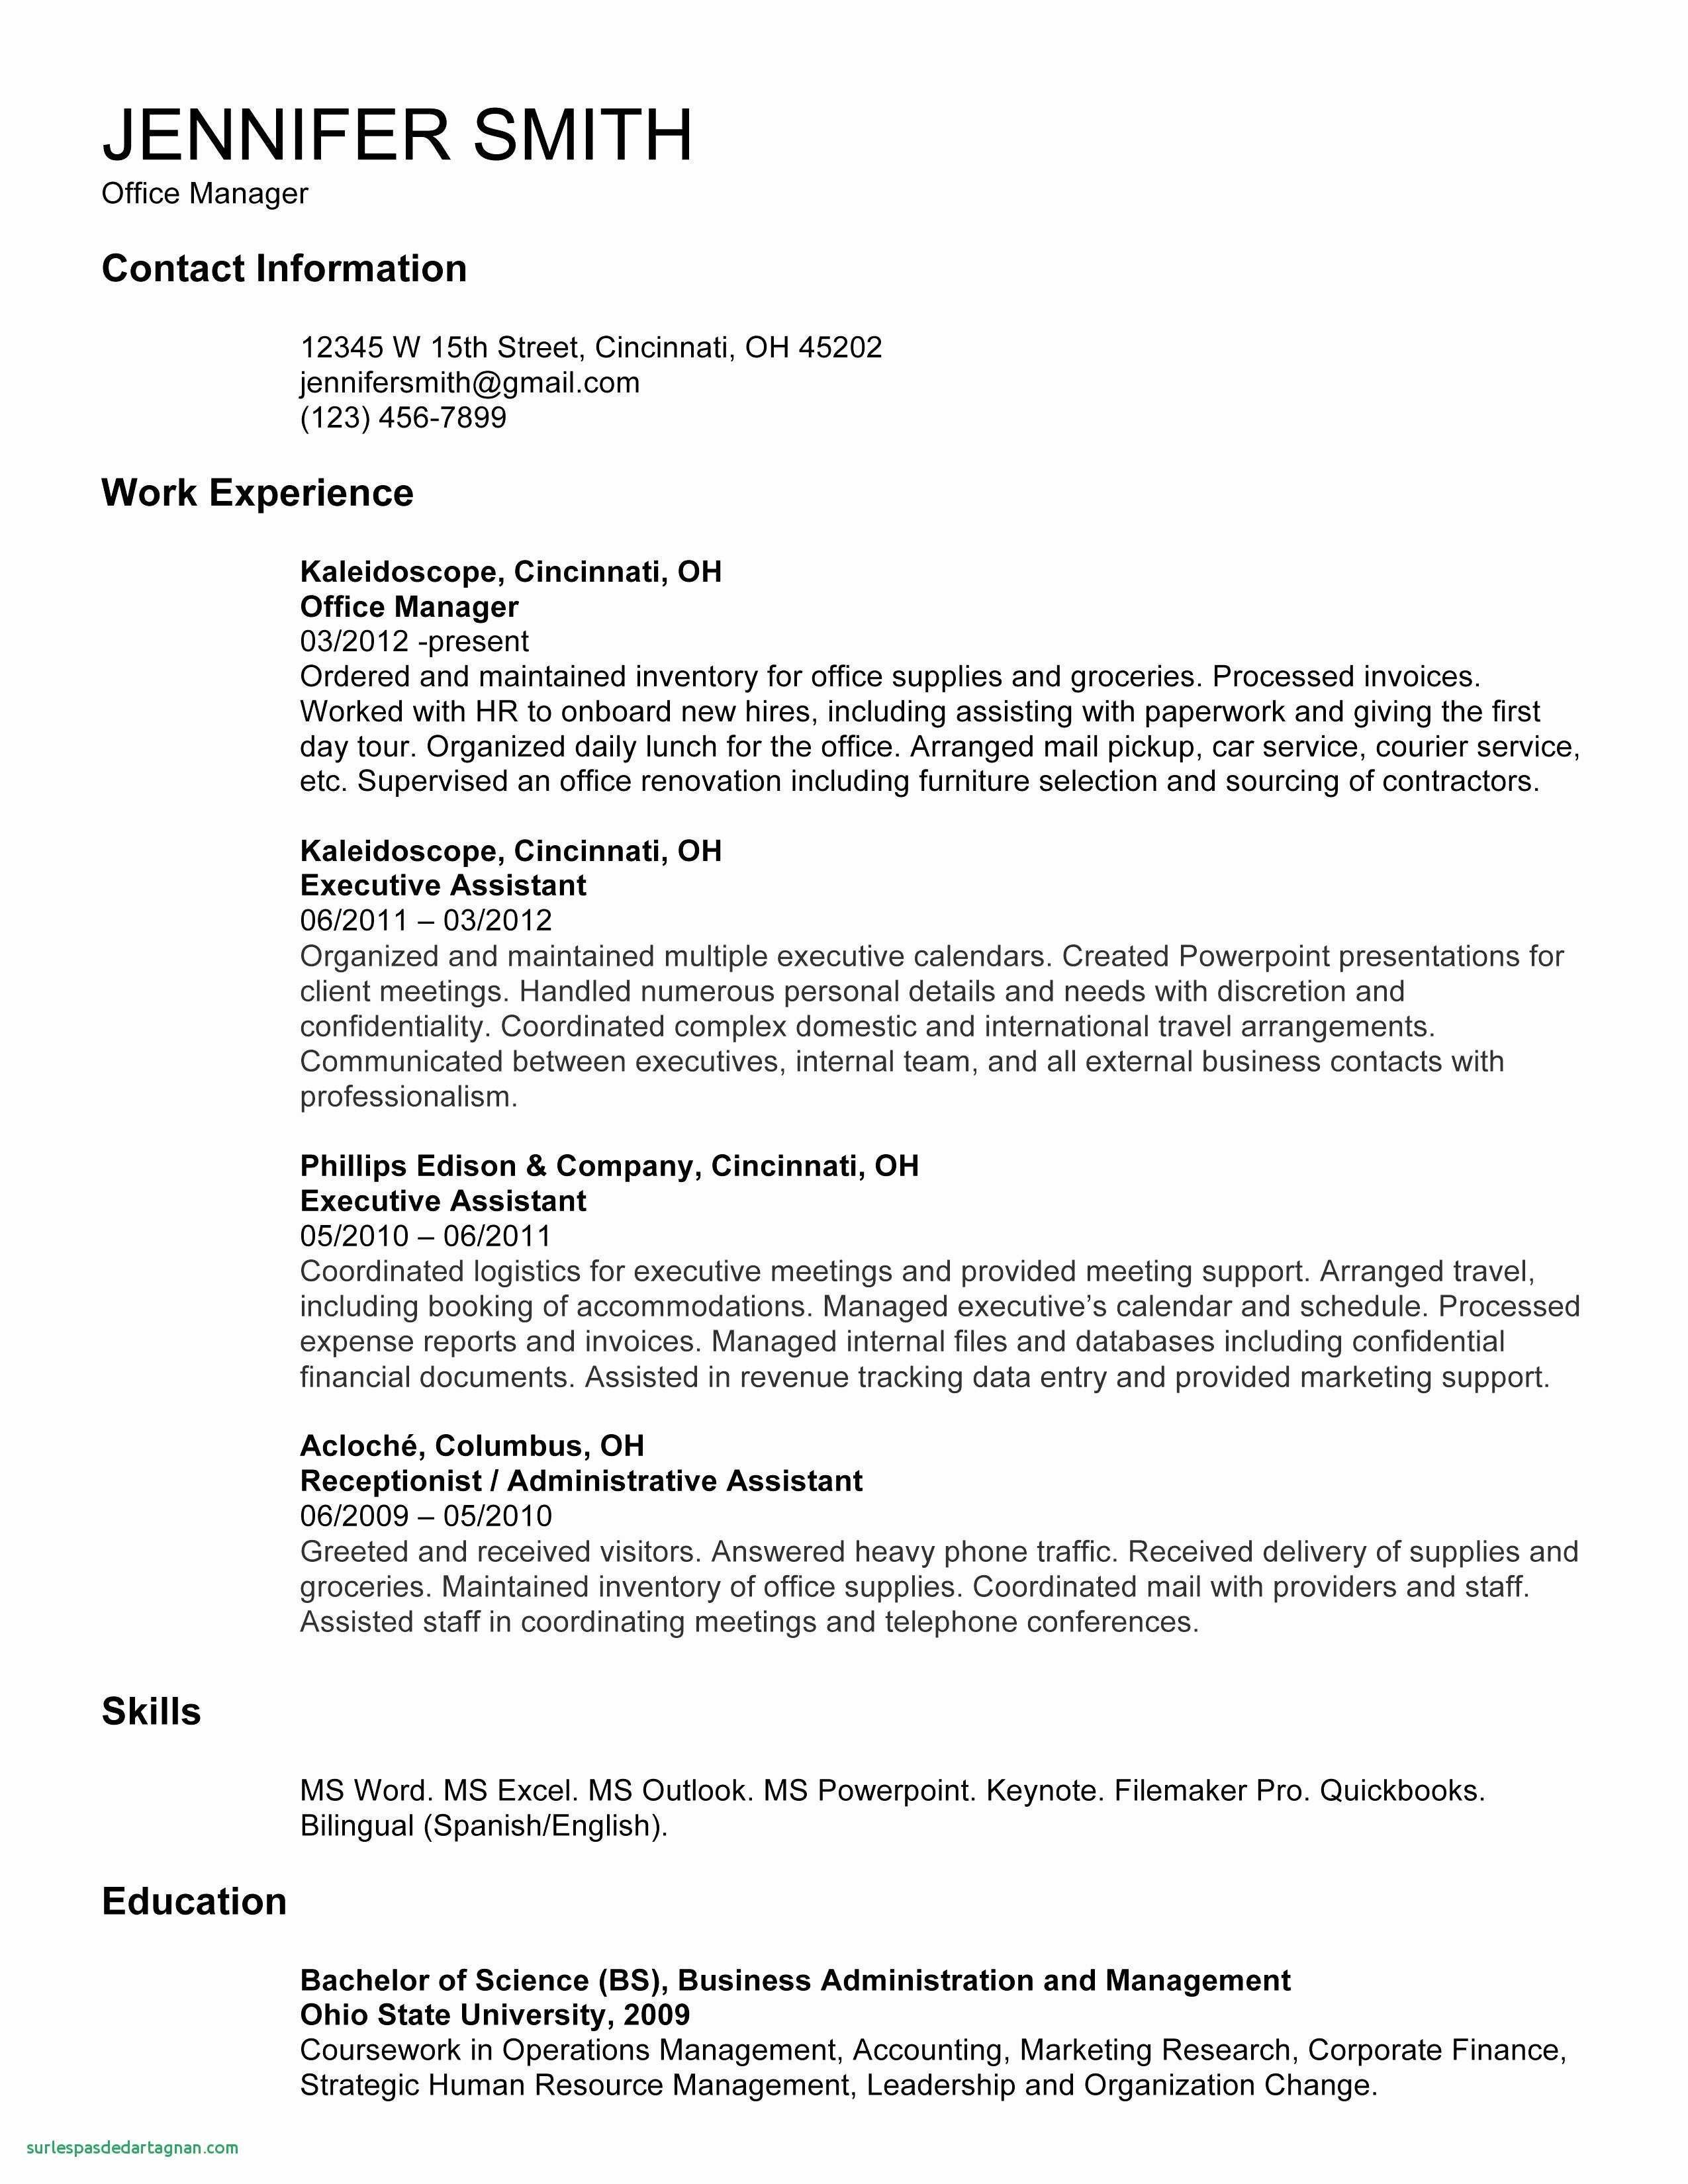 Downloadable Resume Templates for Microsoft Word - Resume Template Download Free Unique ¢Ë†Å¡ Resume Template Download